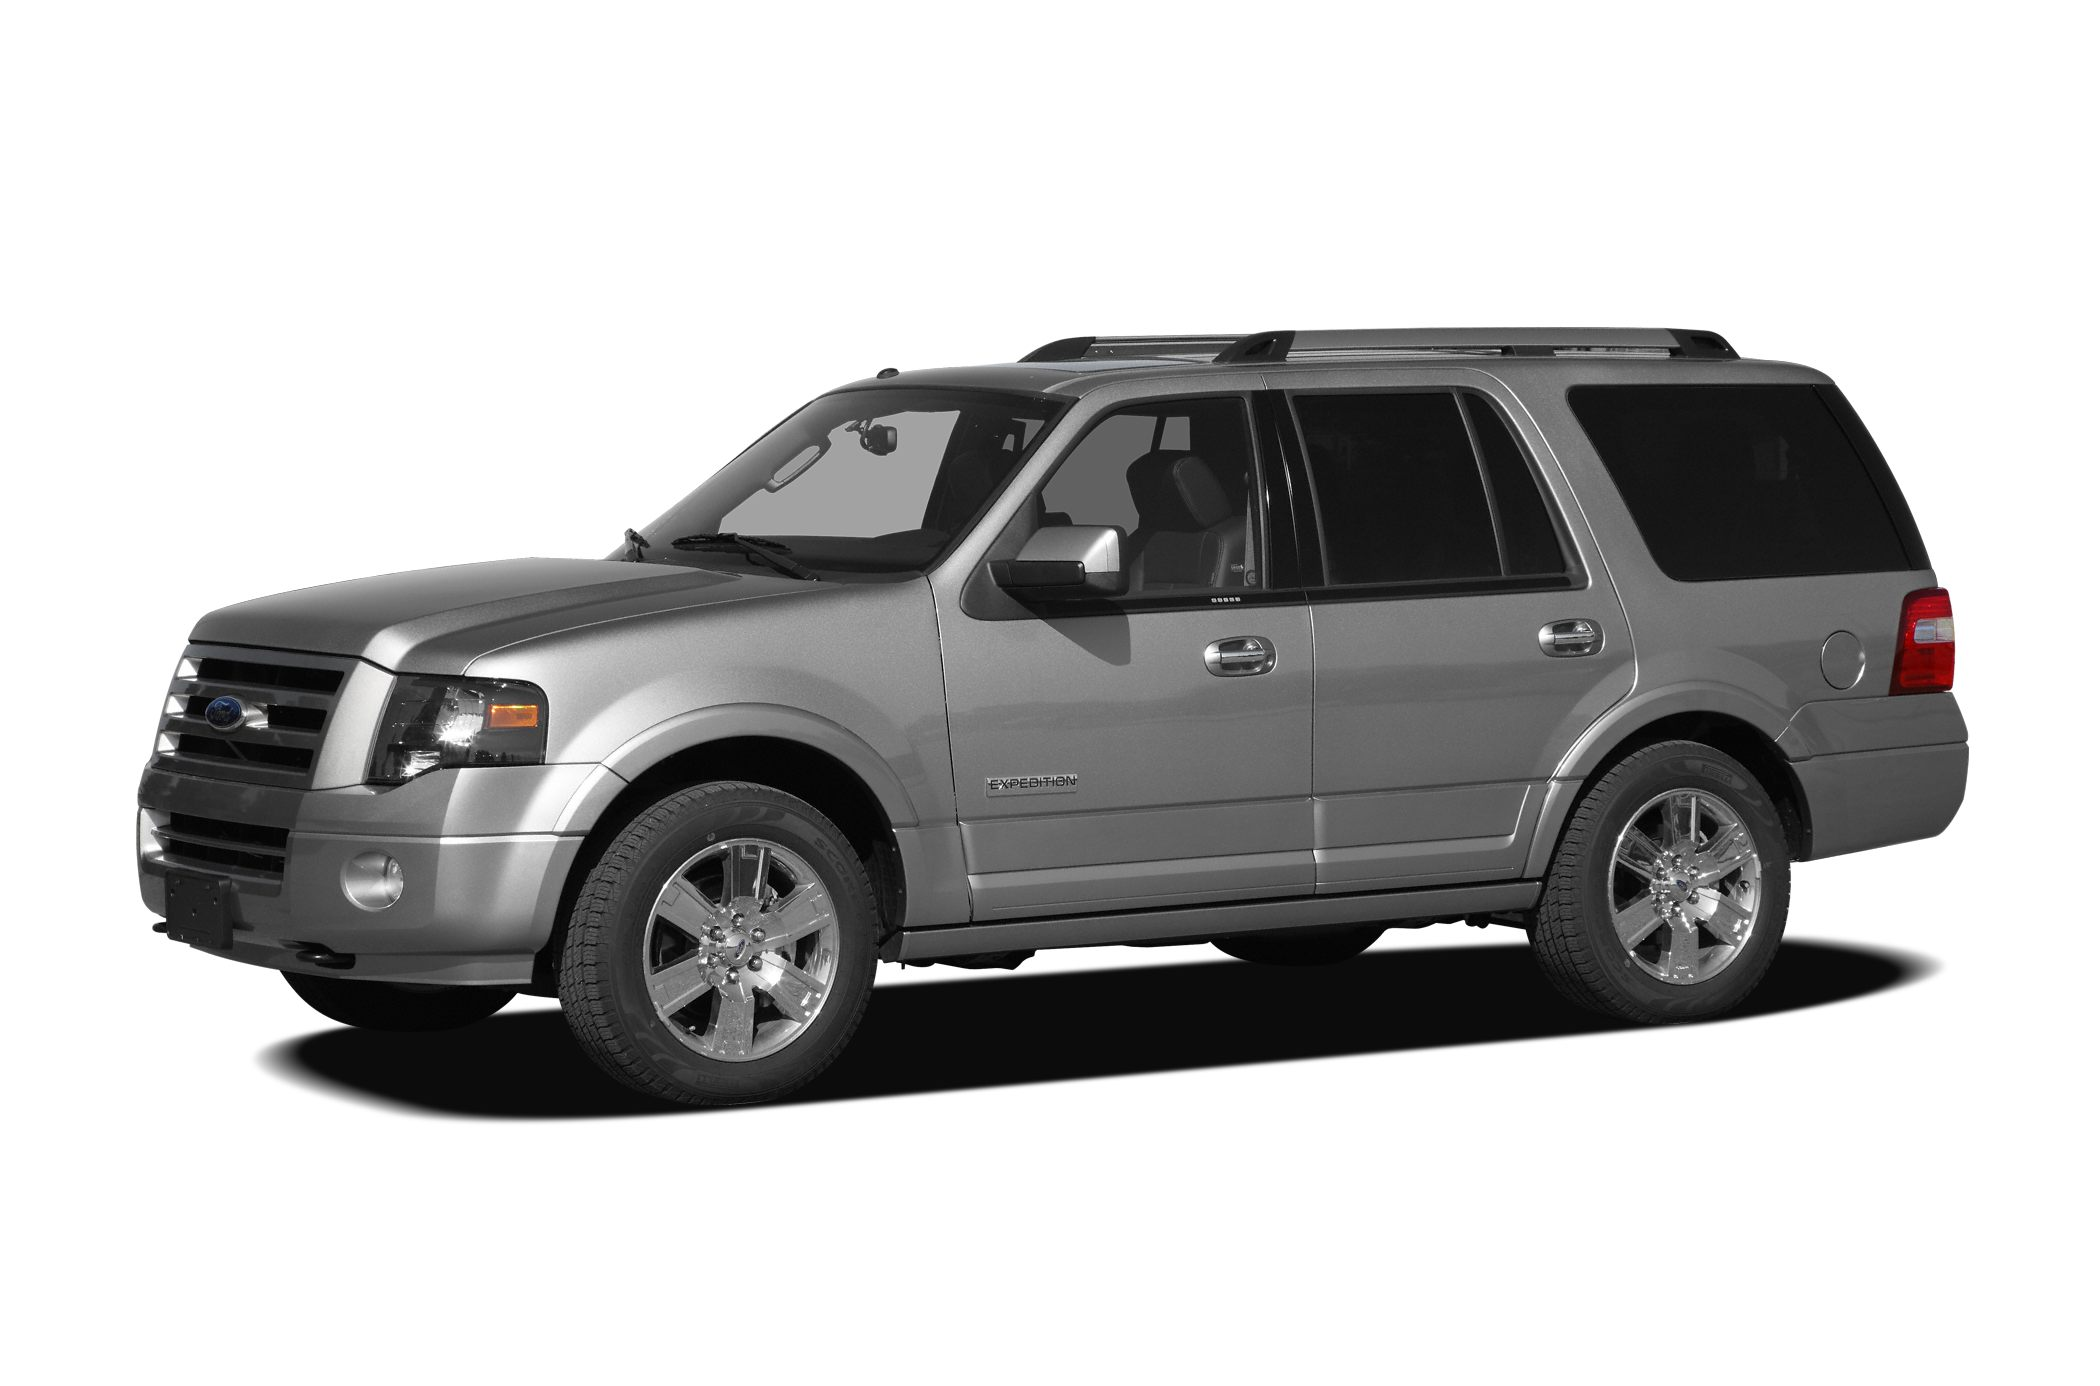 2008 Ford Expedition XLT Miles 153624Color White Stock U2317A VIN 1FMFU15558LA03054